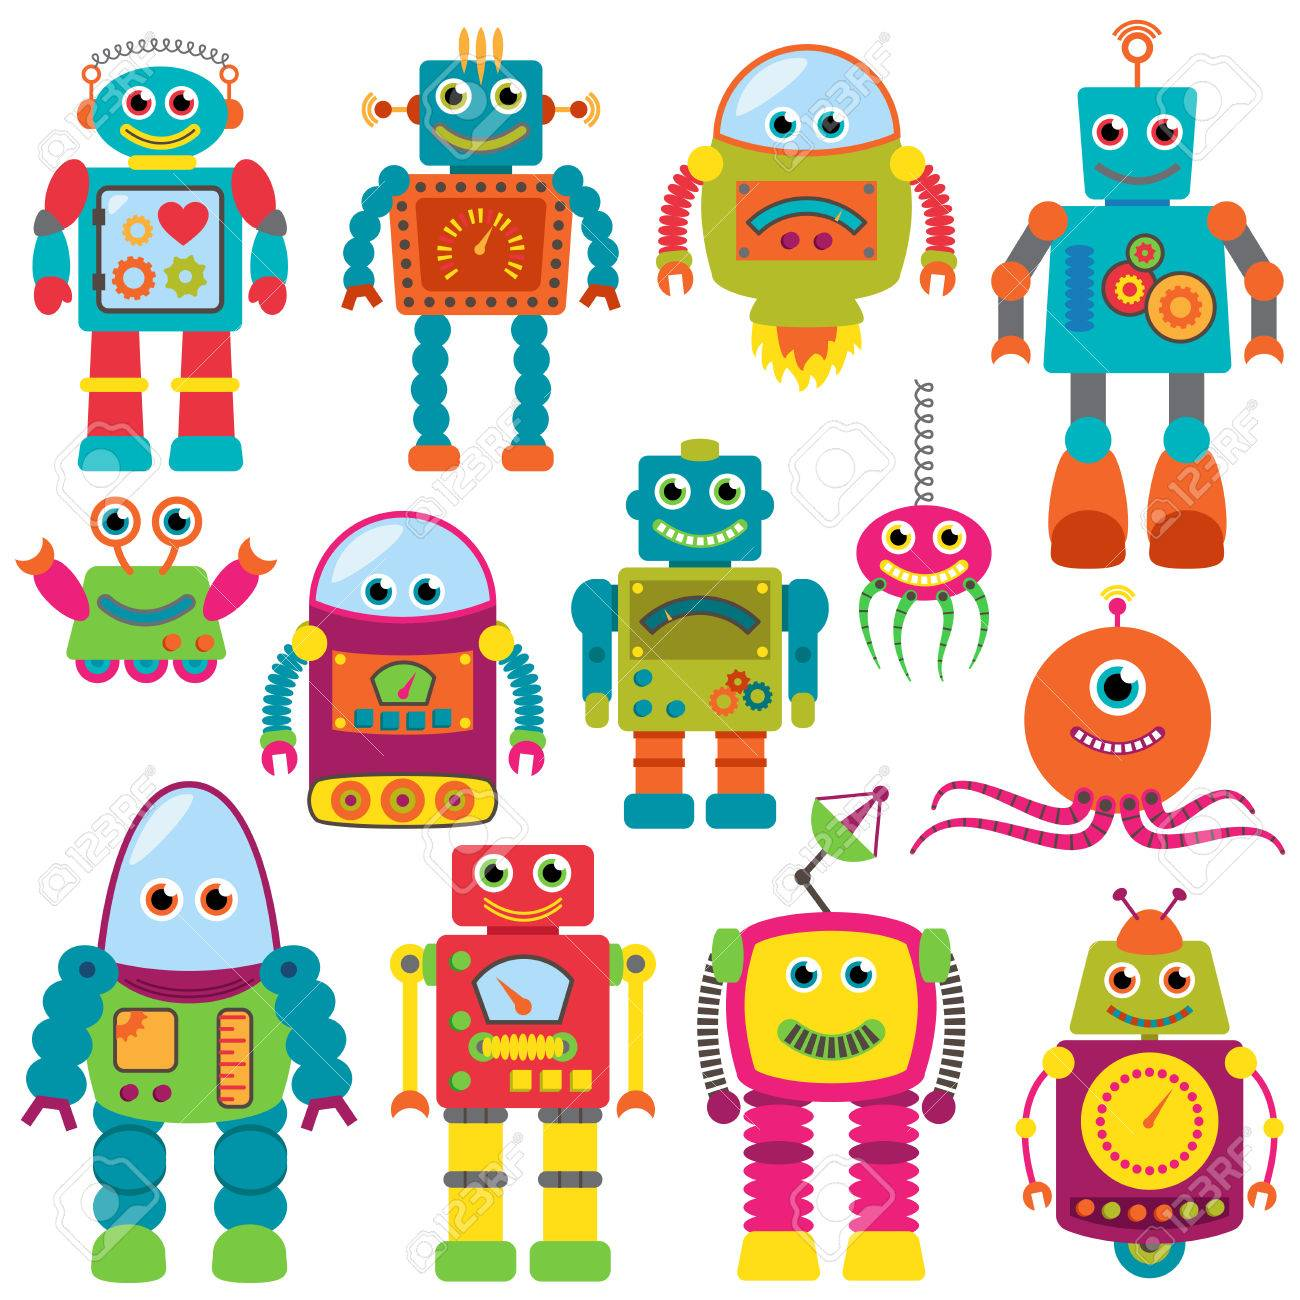 Vector Collection of Colorful Retro Robots - 29966339